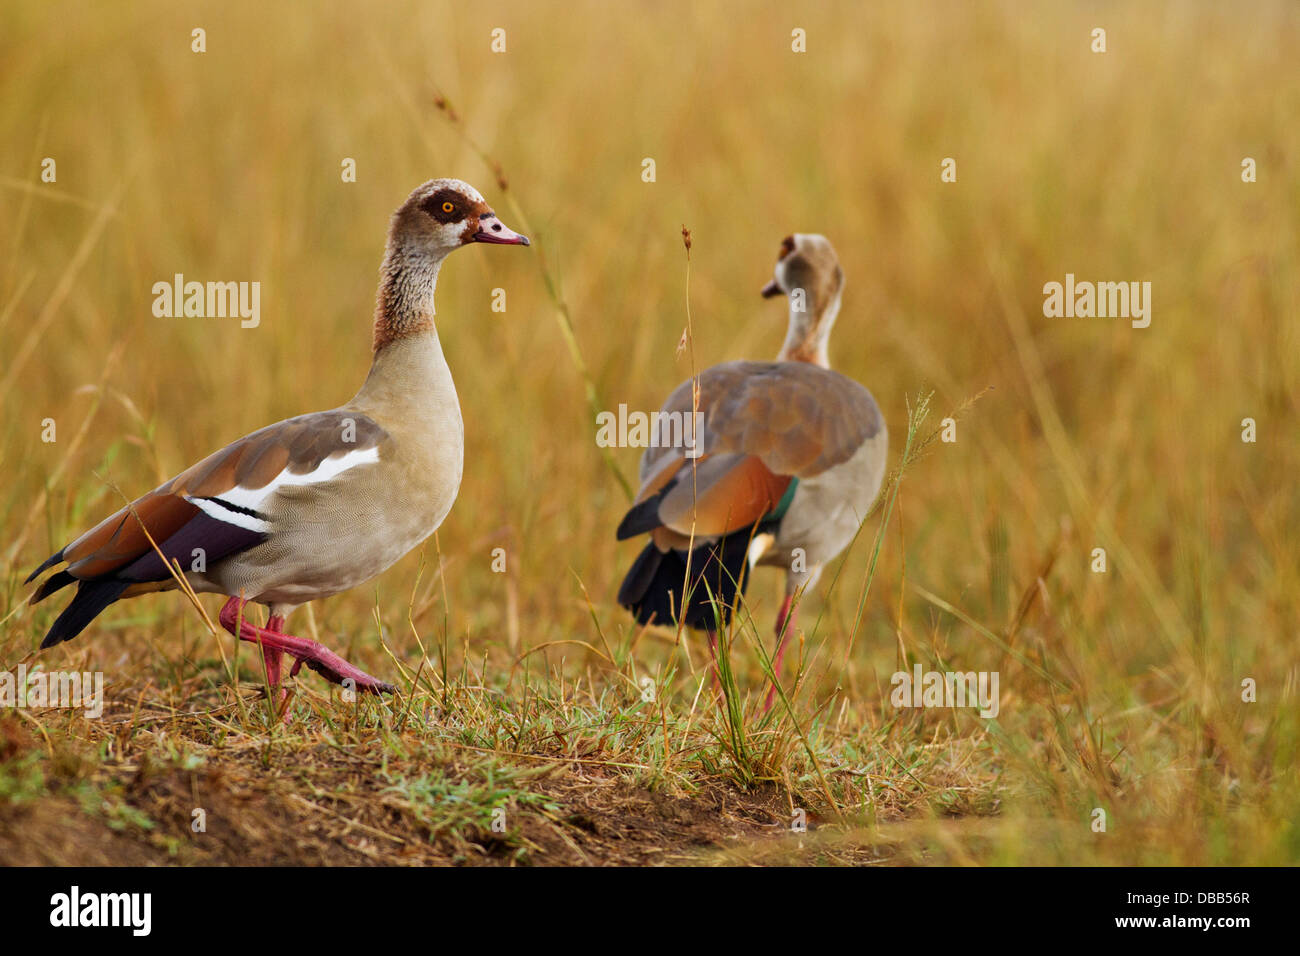 Egyptian Geese in the grassland. Stock Photo